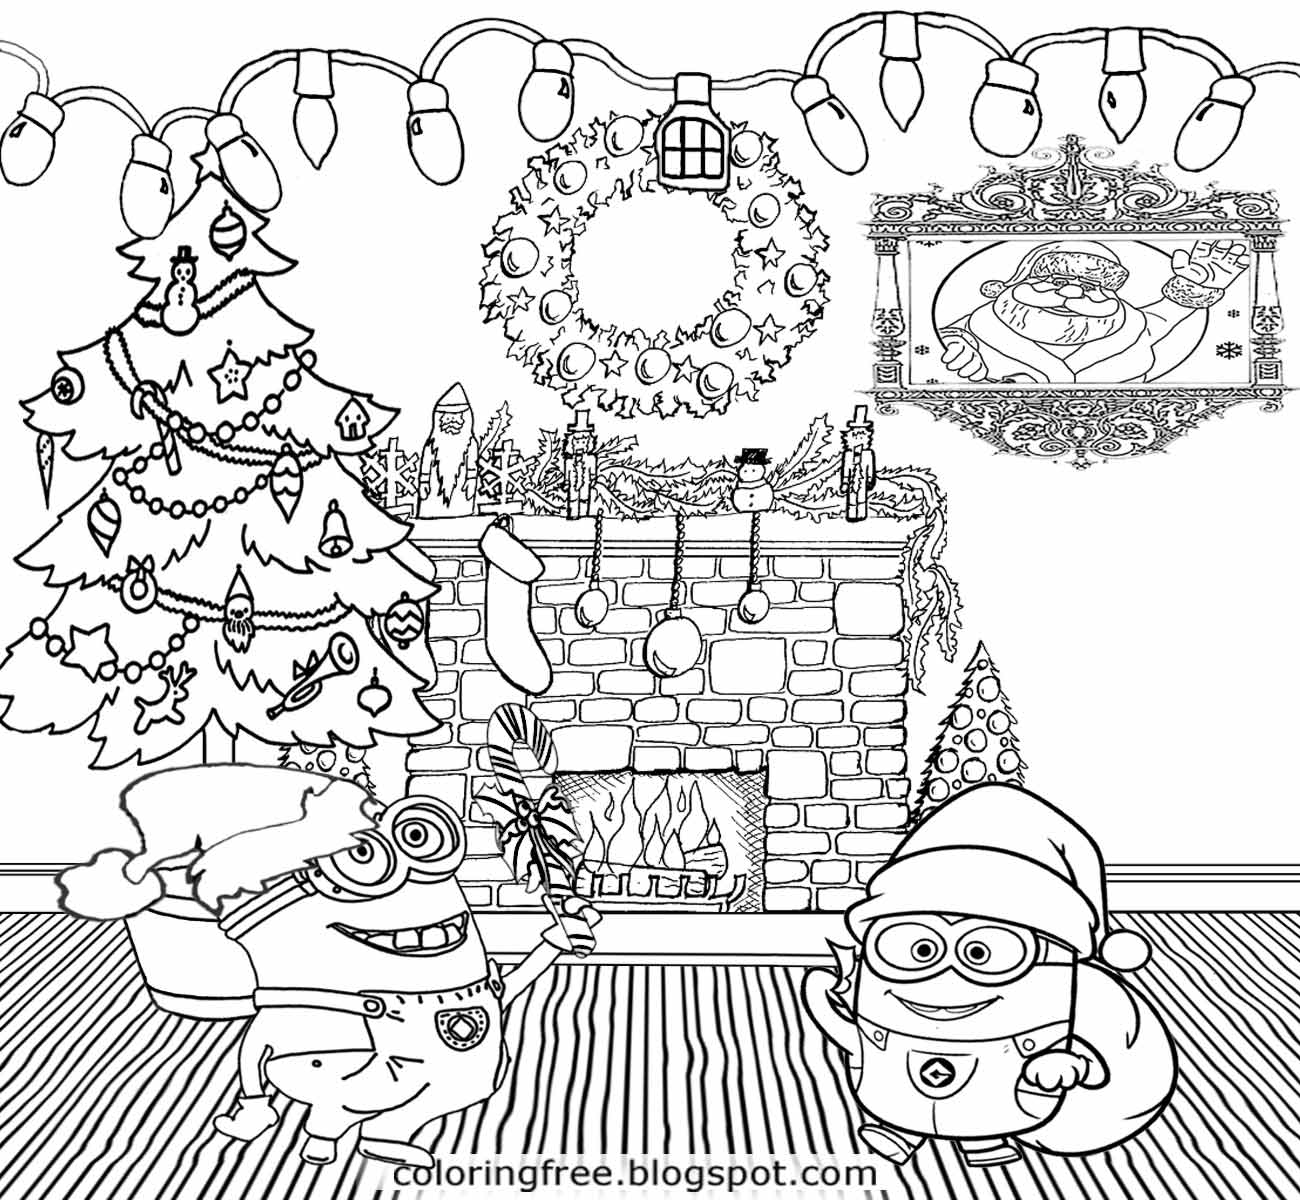 Land Rover Coloring Pages At Getcolorings